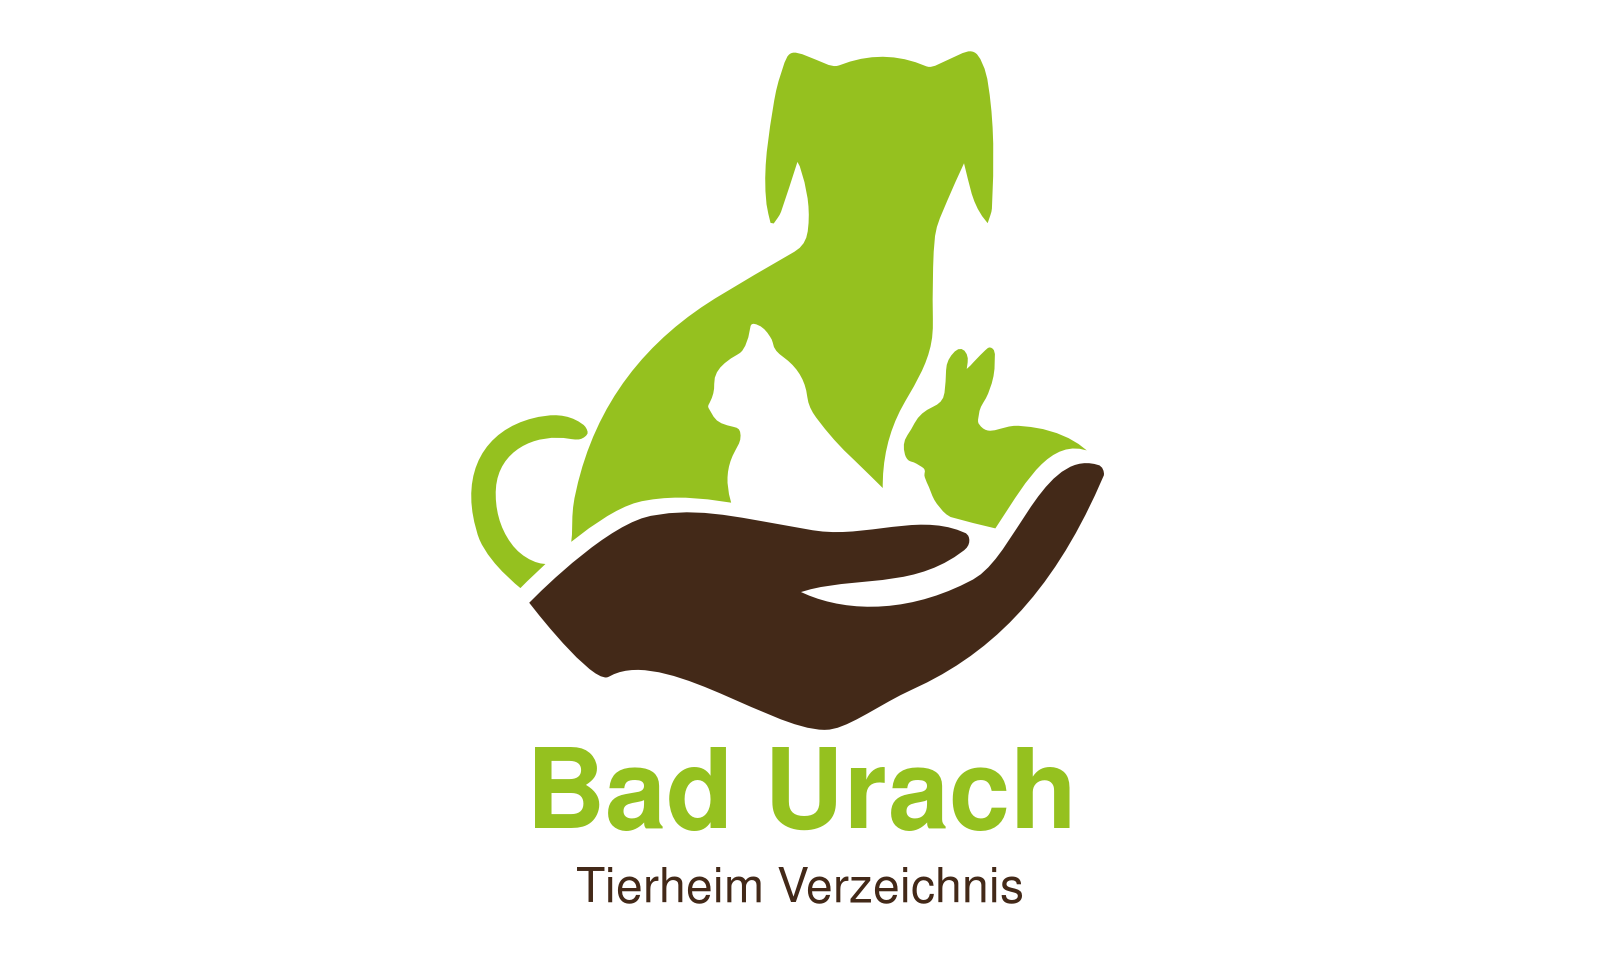 Tierheim Bad Urach